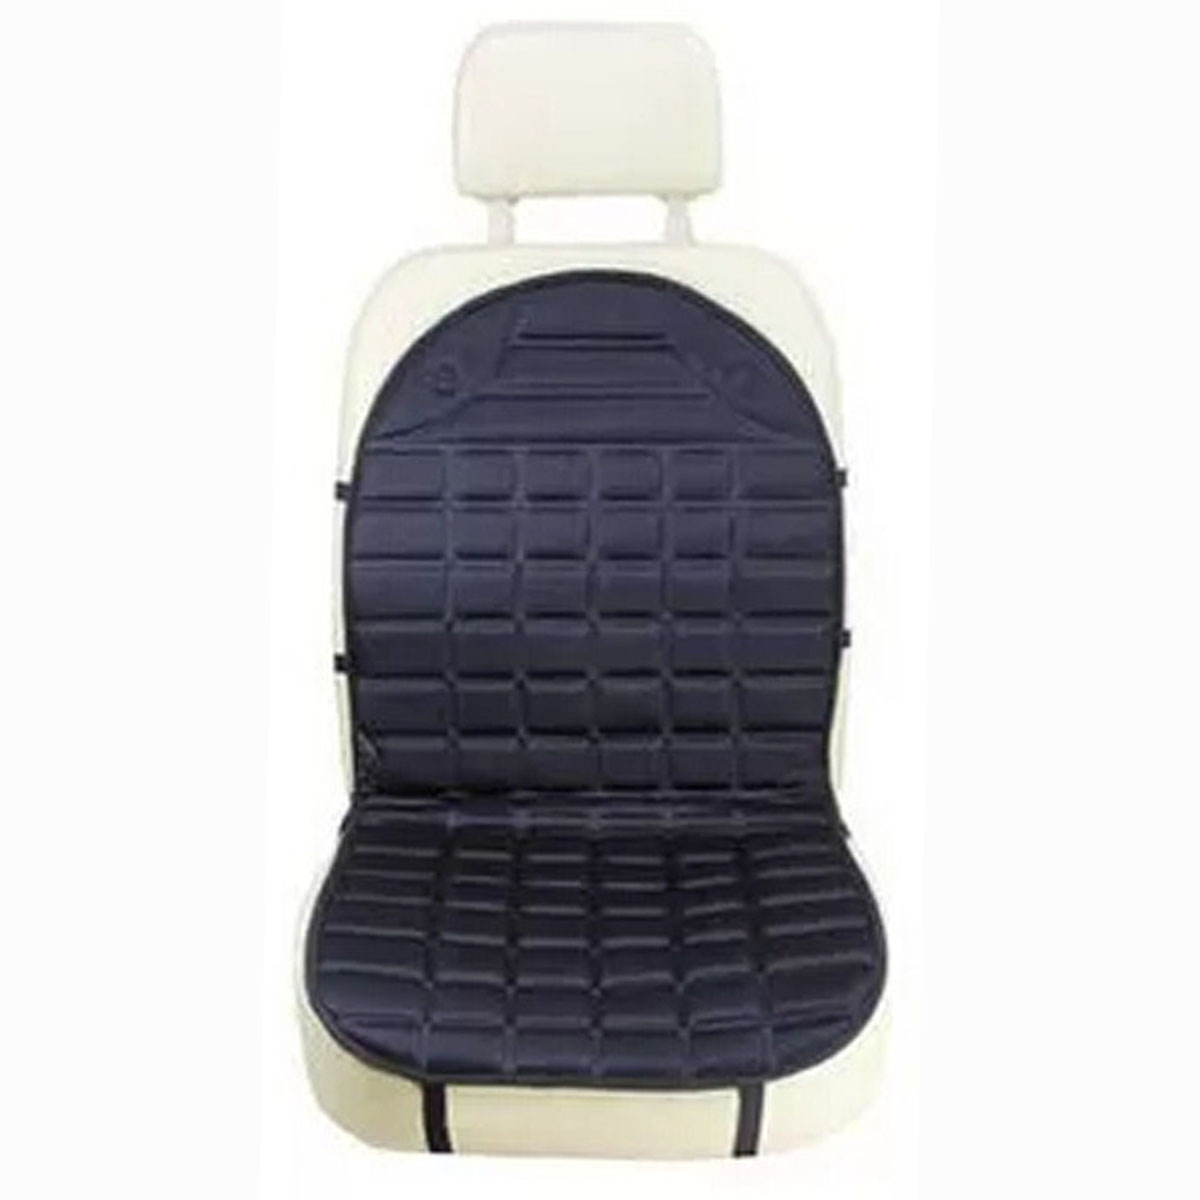 12V Car Seat Heater Heated Cushion Winter Vehicles Seat Warmer Cover With High/Low Temp Switch Fiber Composite Material